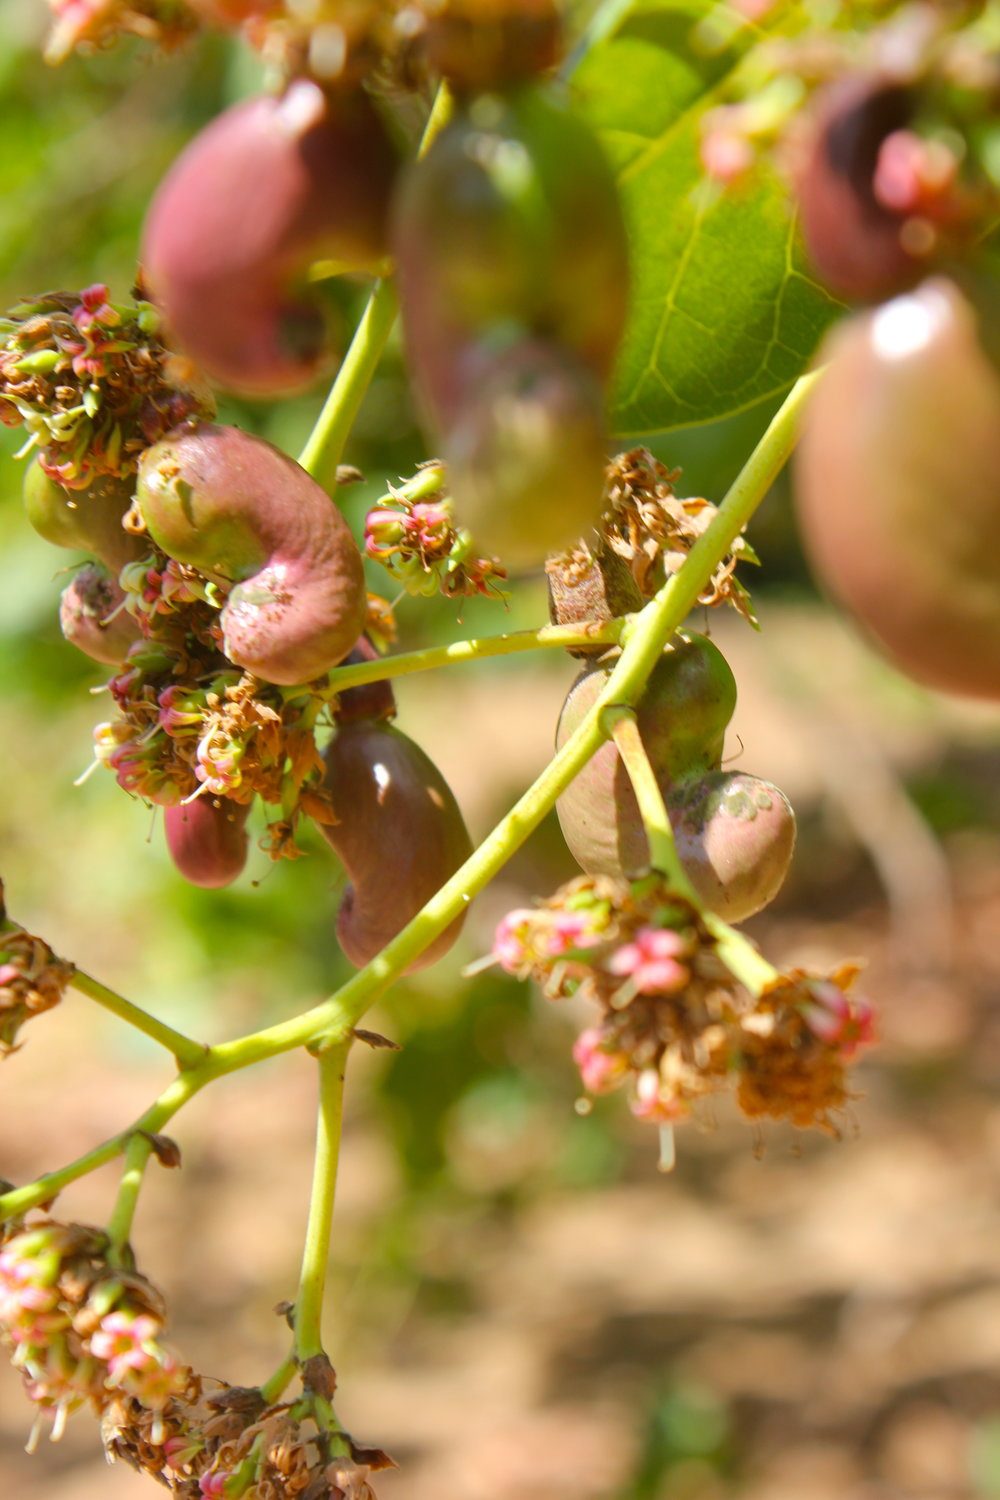 Nangade district, Cabo Delgado province  - Cashew nuts and apples emerge from the small pink flowers that grow at the tip of the branches |  As castanhas de caju emergem das pequenas flores cor de rosa que crescem na ponta dos ramos